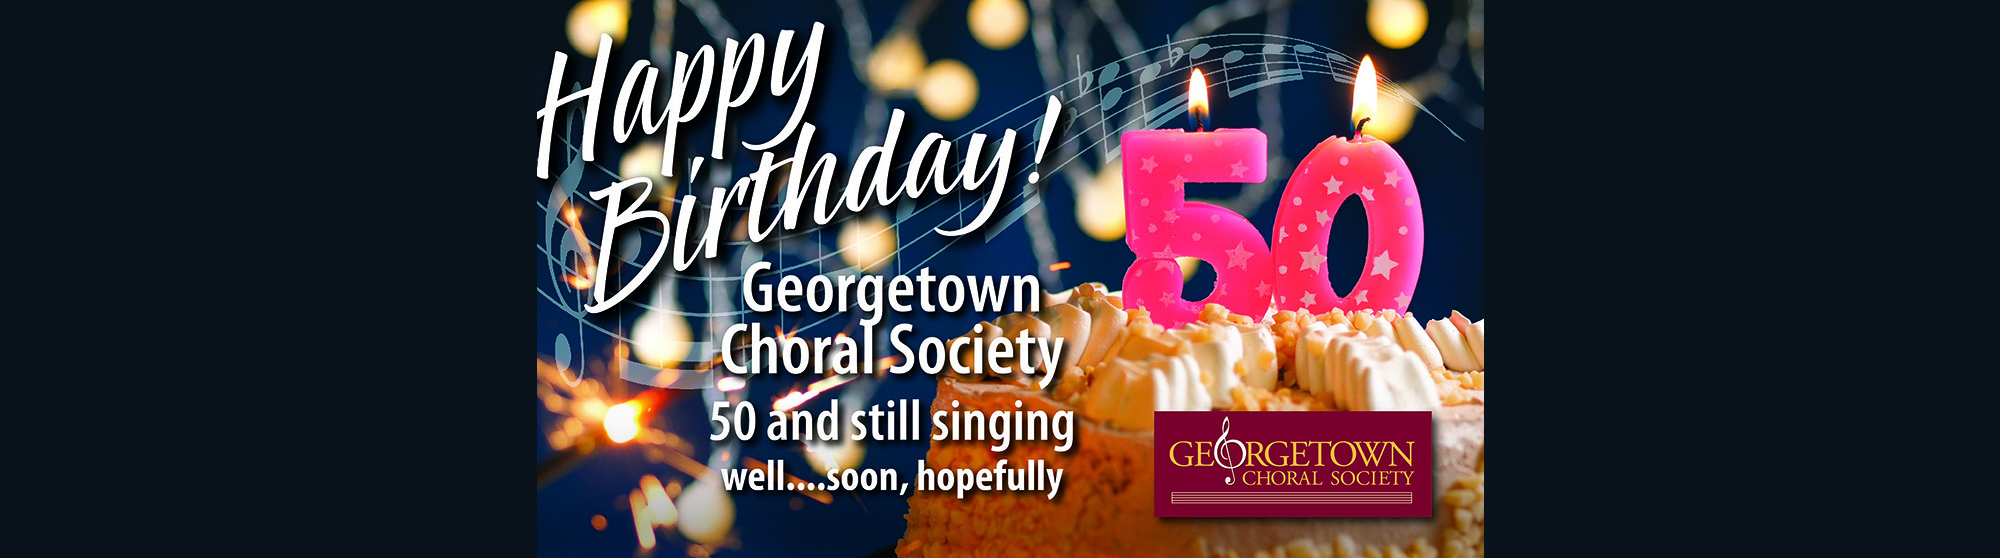 Georgetown Choral Society 50th BIrthday